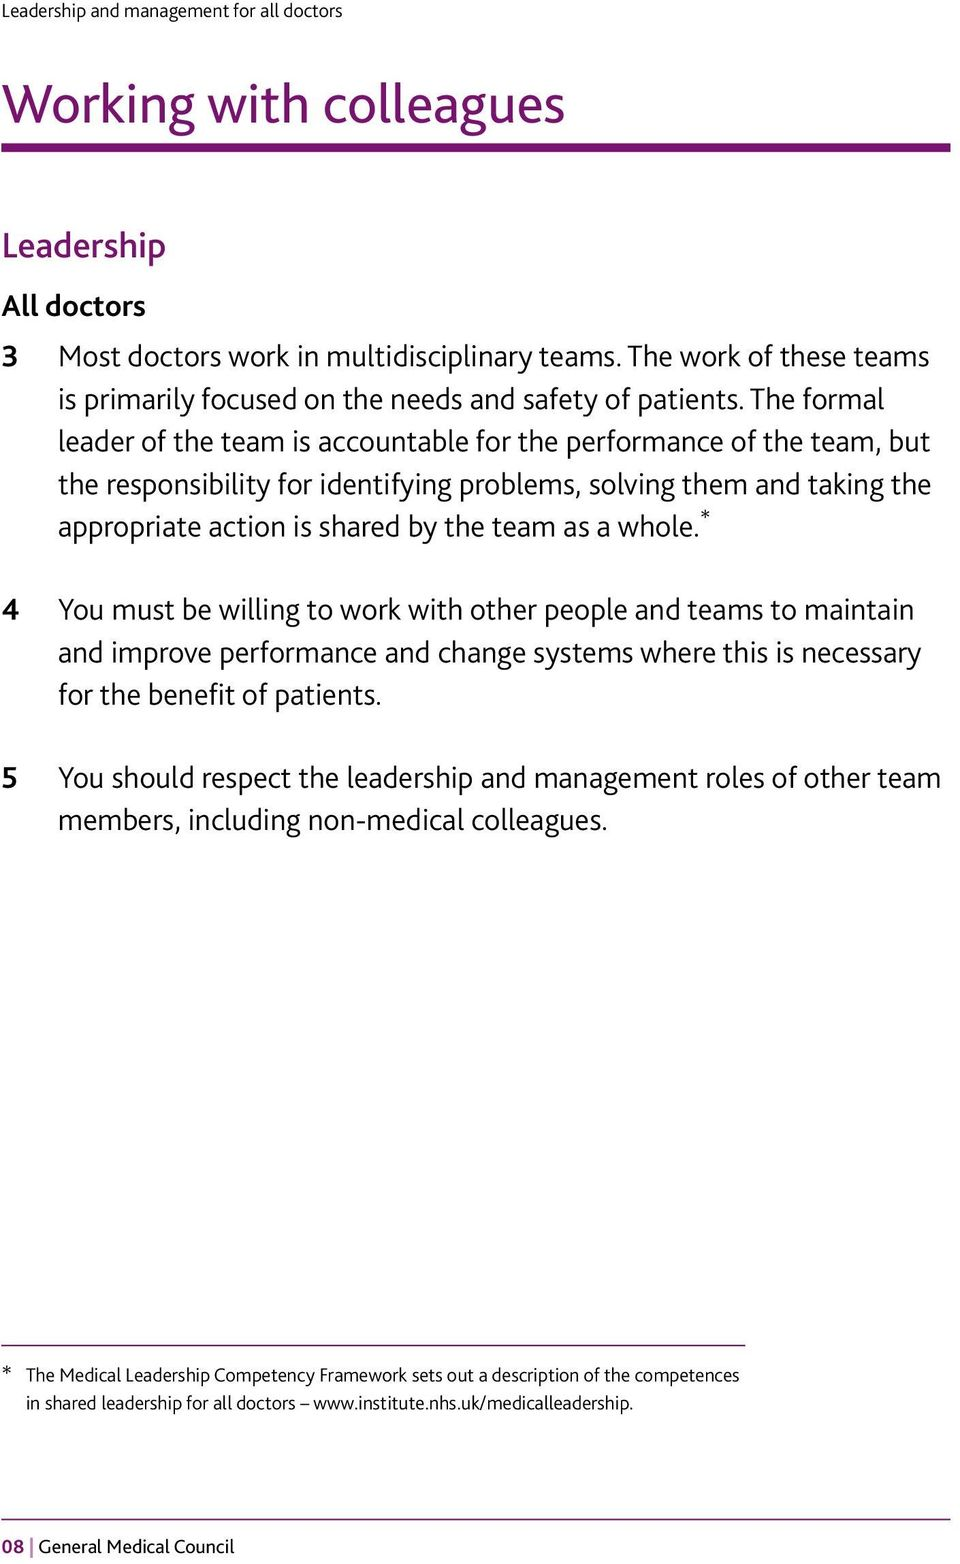 a whole. * 4 You must be willing to work with other people and teams to maintain and improve performance and change systems where this is necessary for the benefit of patients.